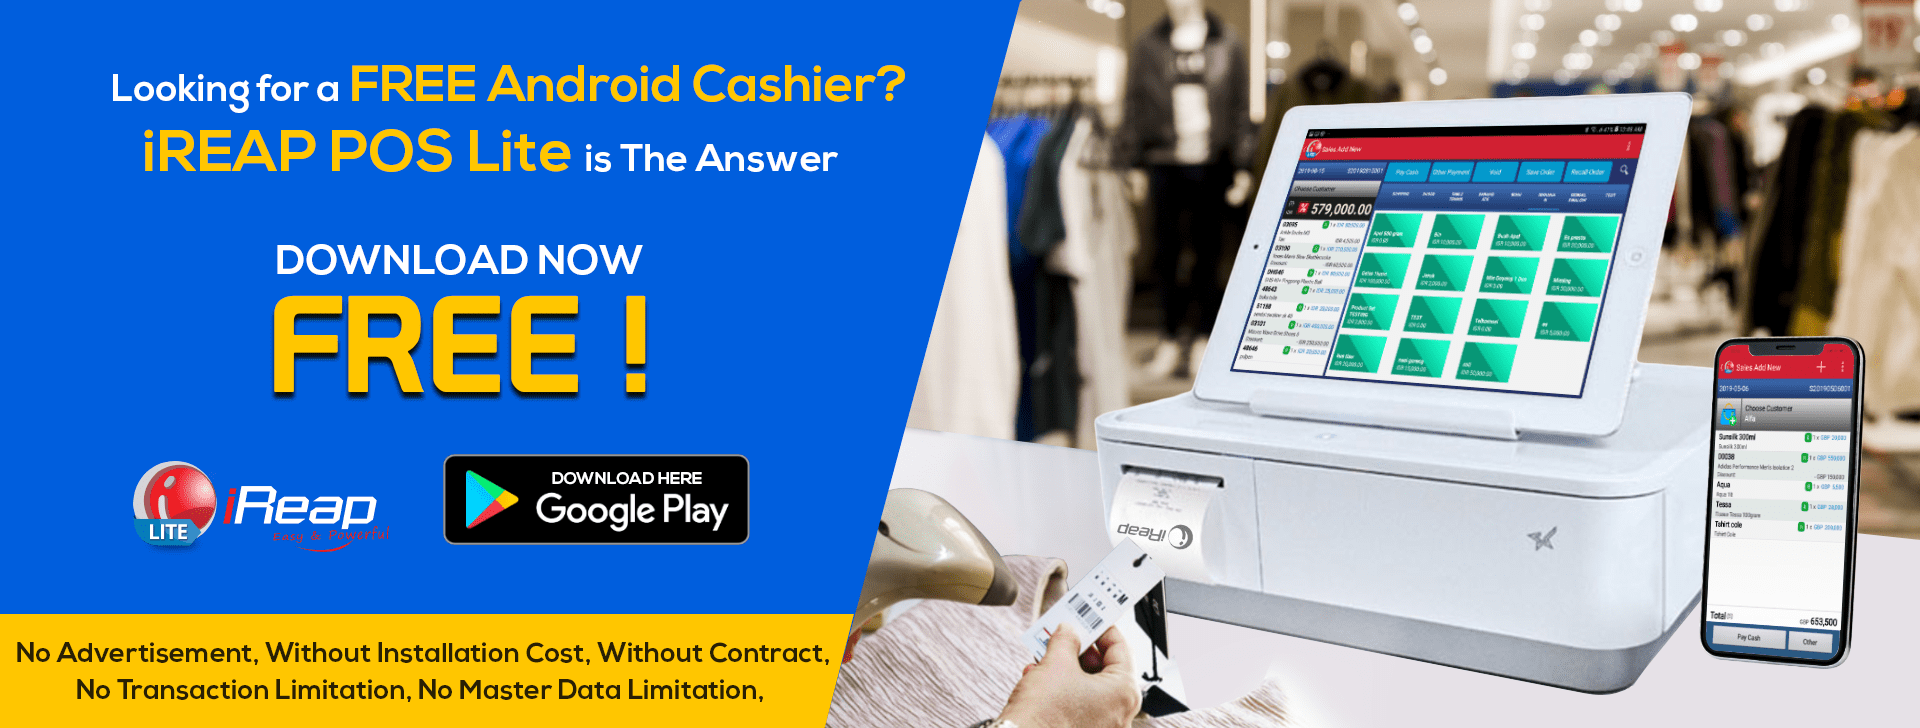 Free Mobile Cashier Android for Micro / Personal Business iREAP POS Lite, No Advertisement, Without Installation Cost, No Transaction Limitation, No Master Data Limitation, Without Contact